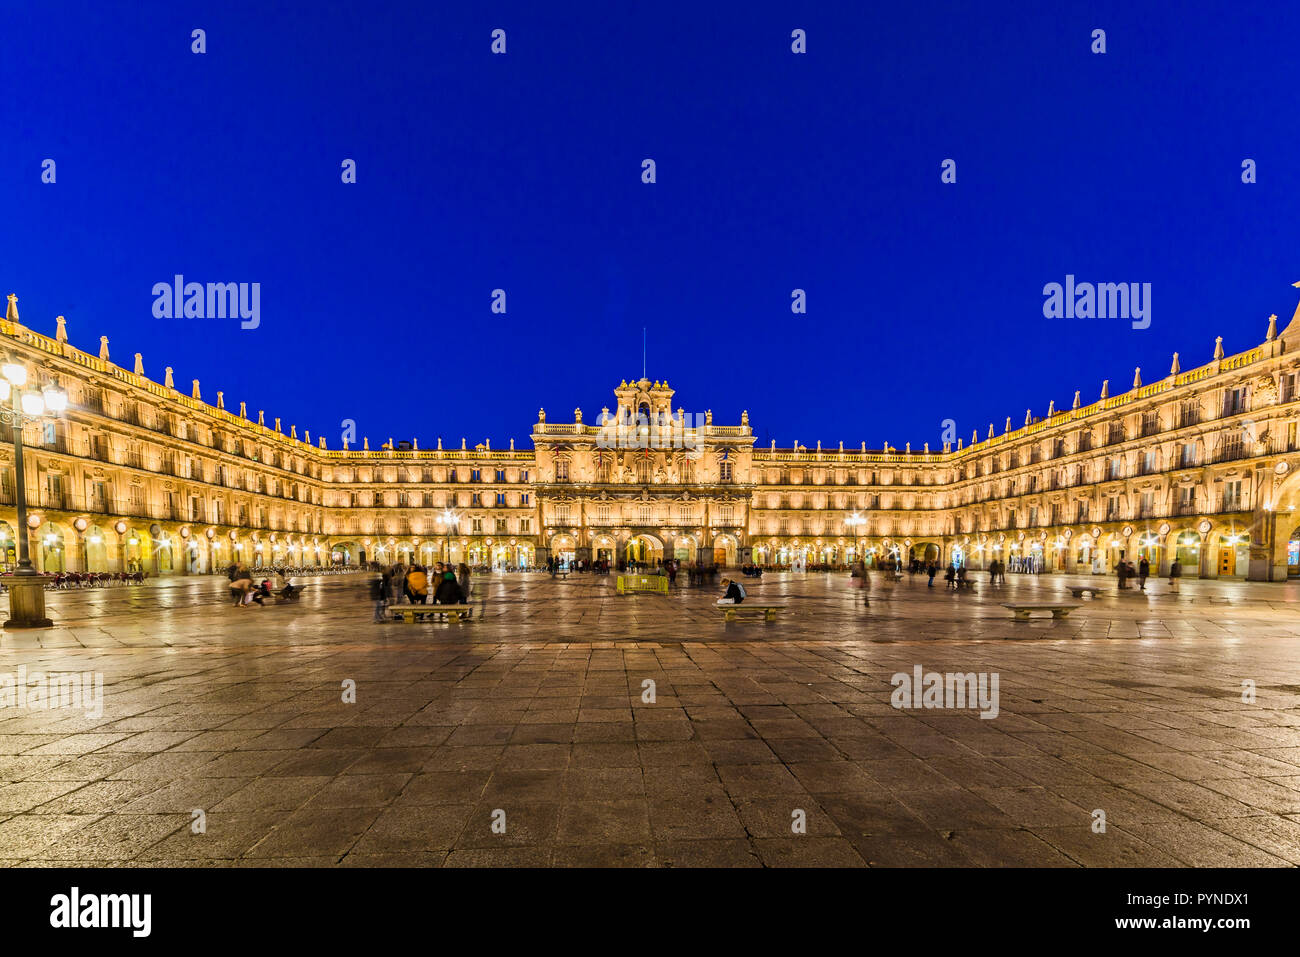 The Plaza Mayor, Main Square, in Salamanca, Spain, is a large plaza located in the center of Salamanca, used as a public square. It was built in the t - Stock Image